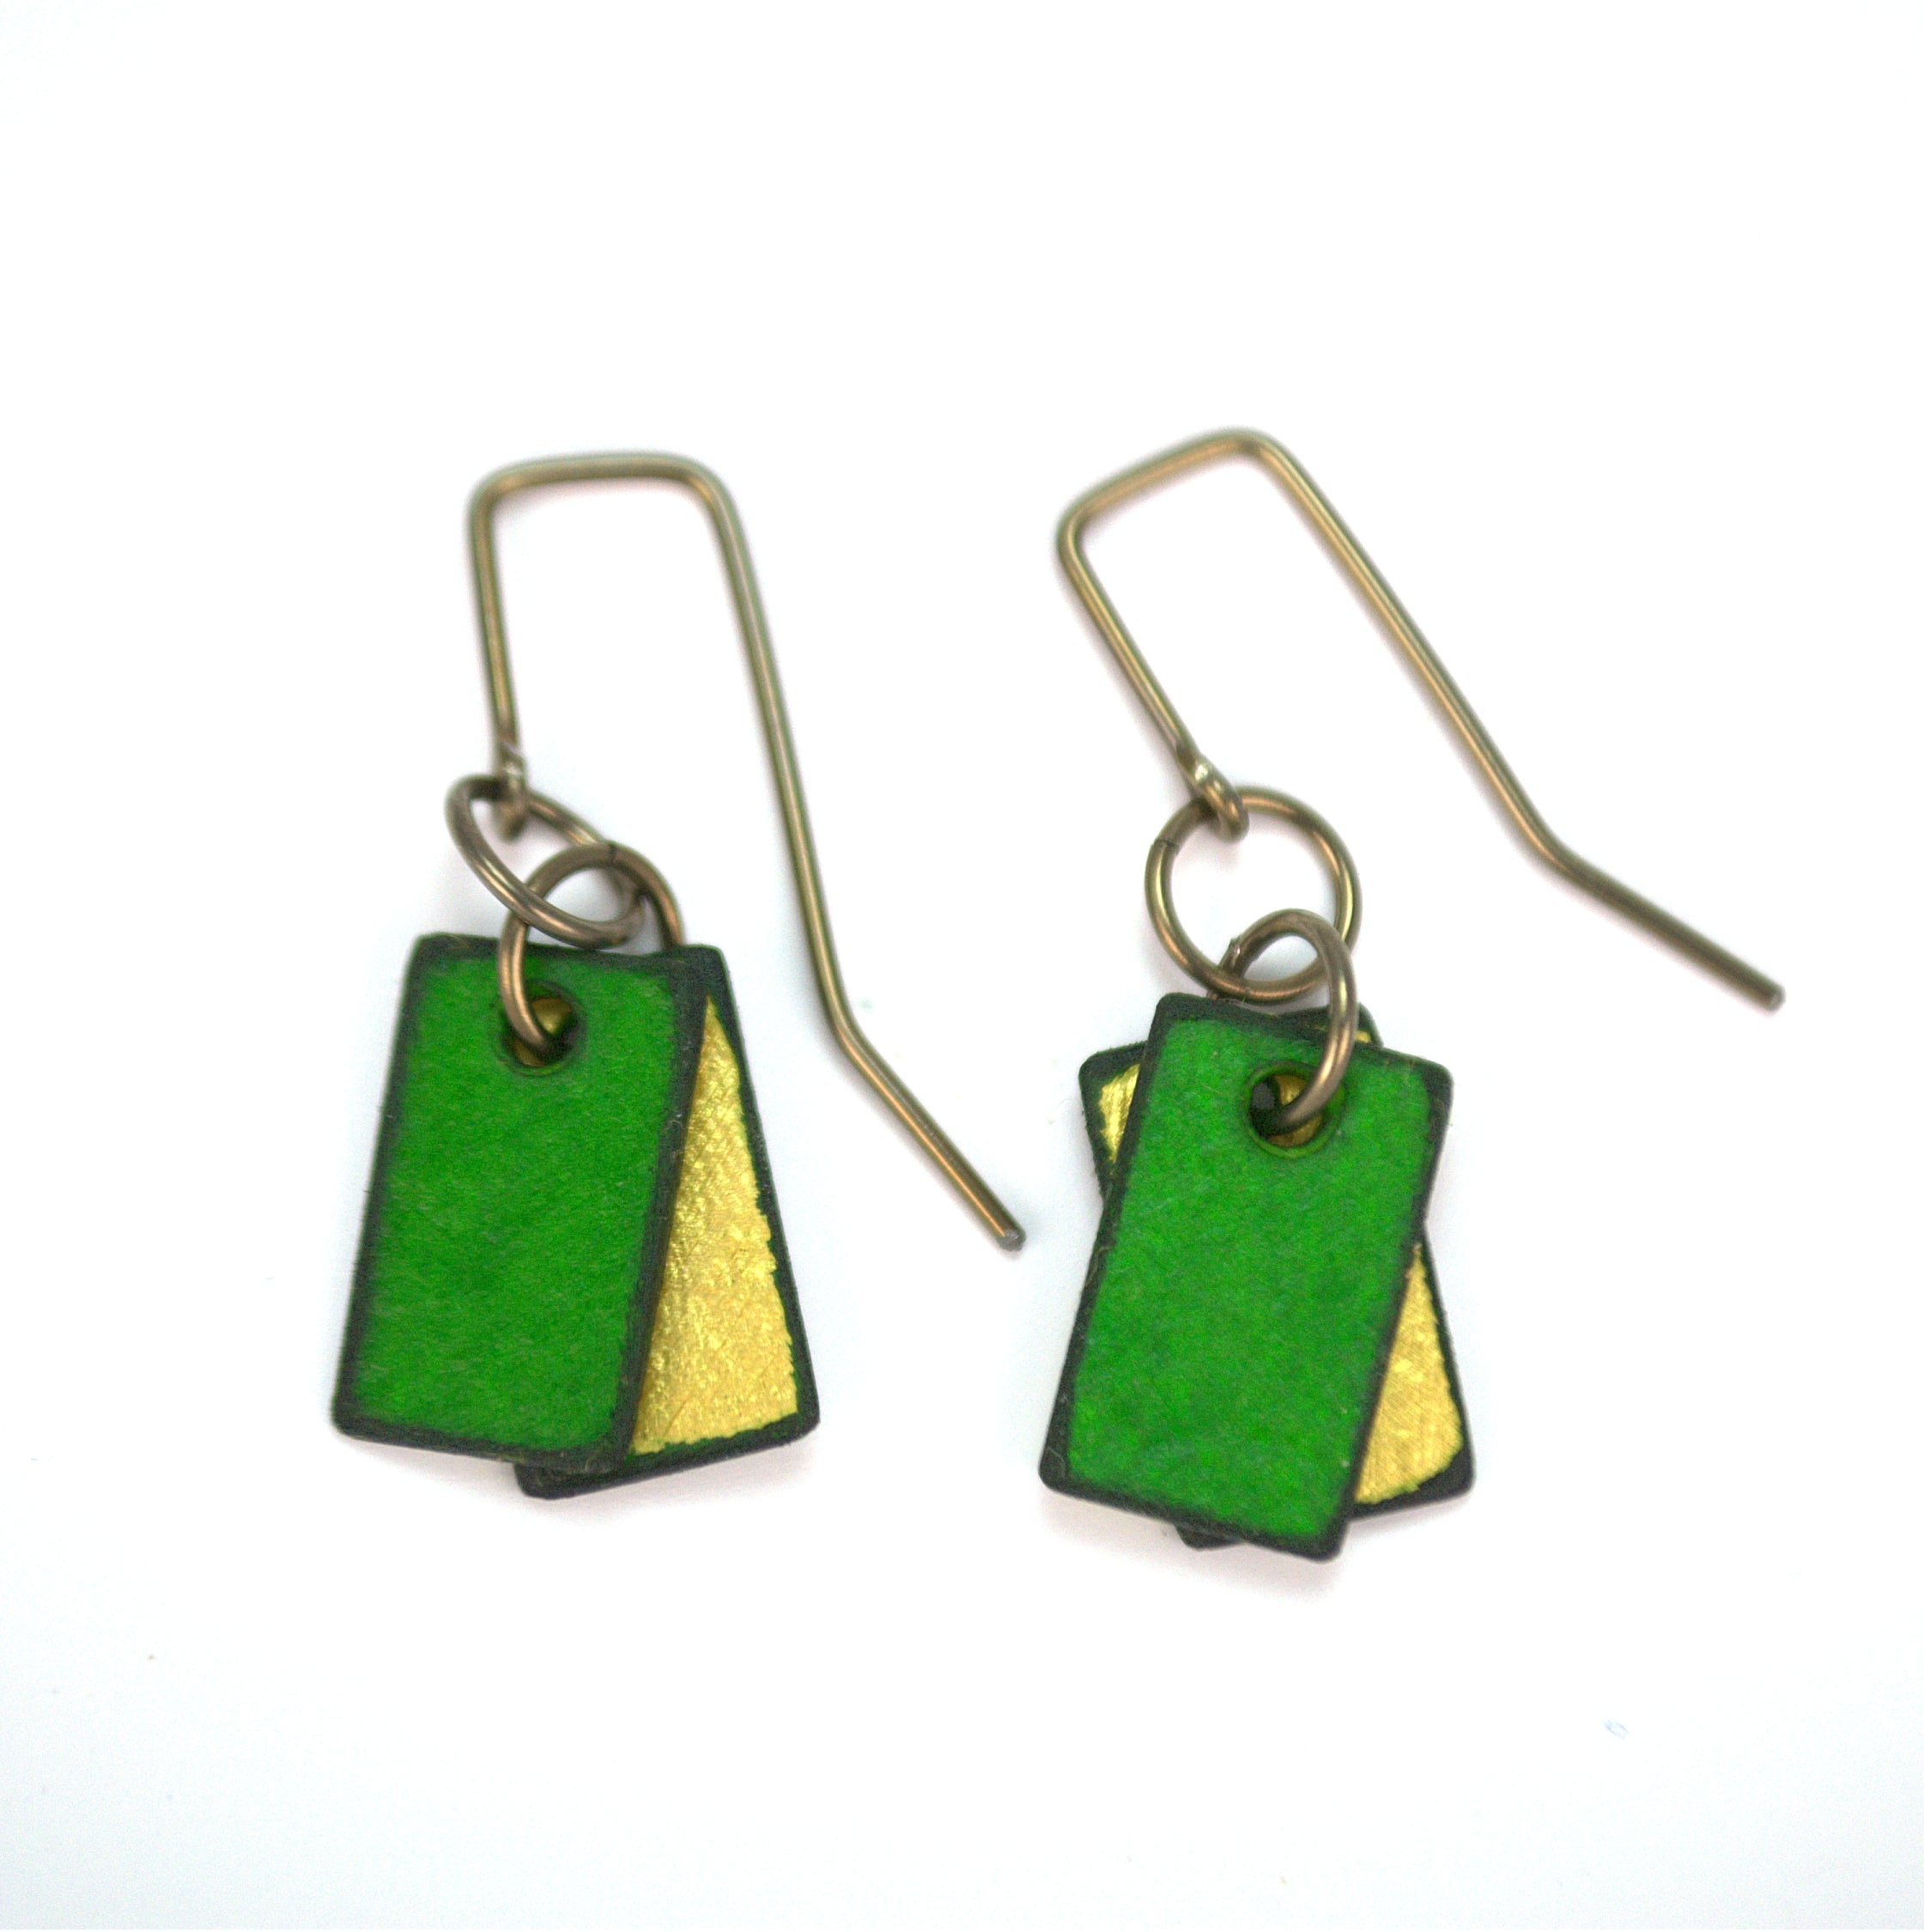 Mini emerald green rectangle earrings, made from rawhide in Cheyenne Wyoming, hypoallergenic